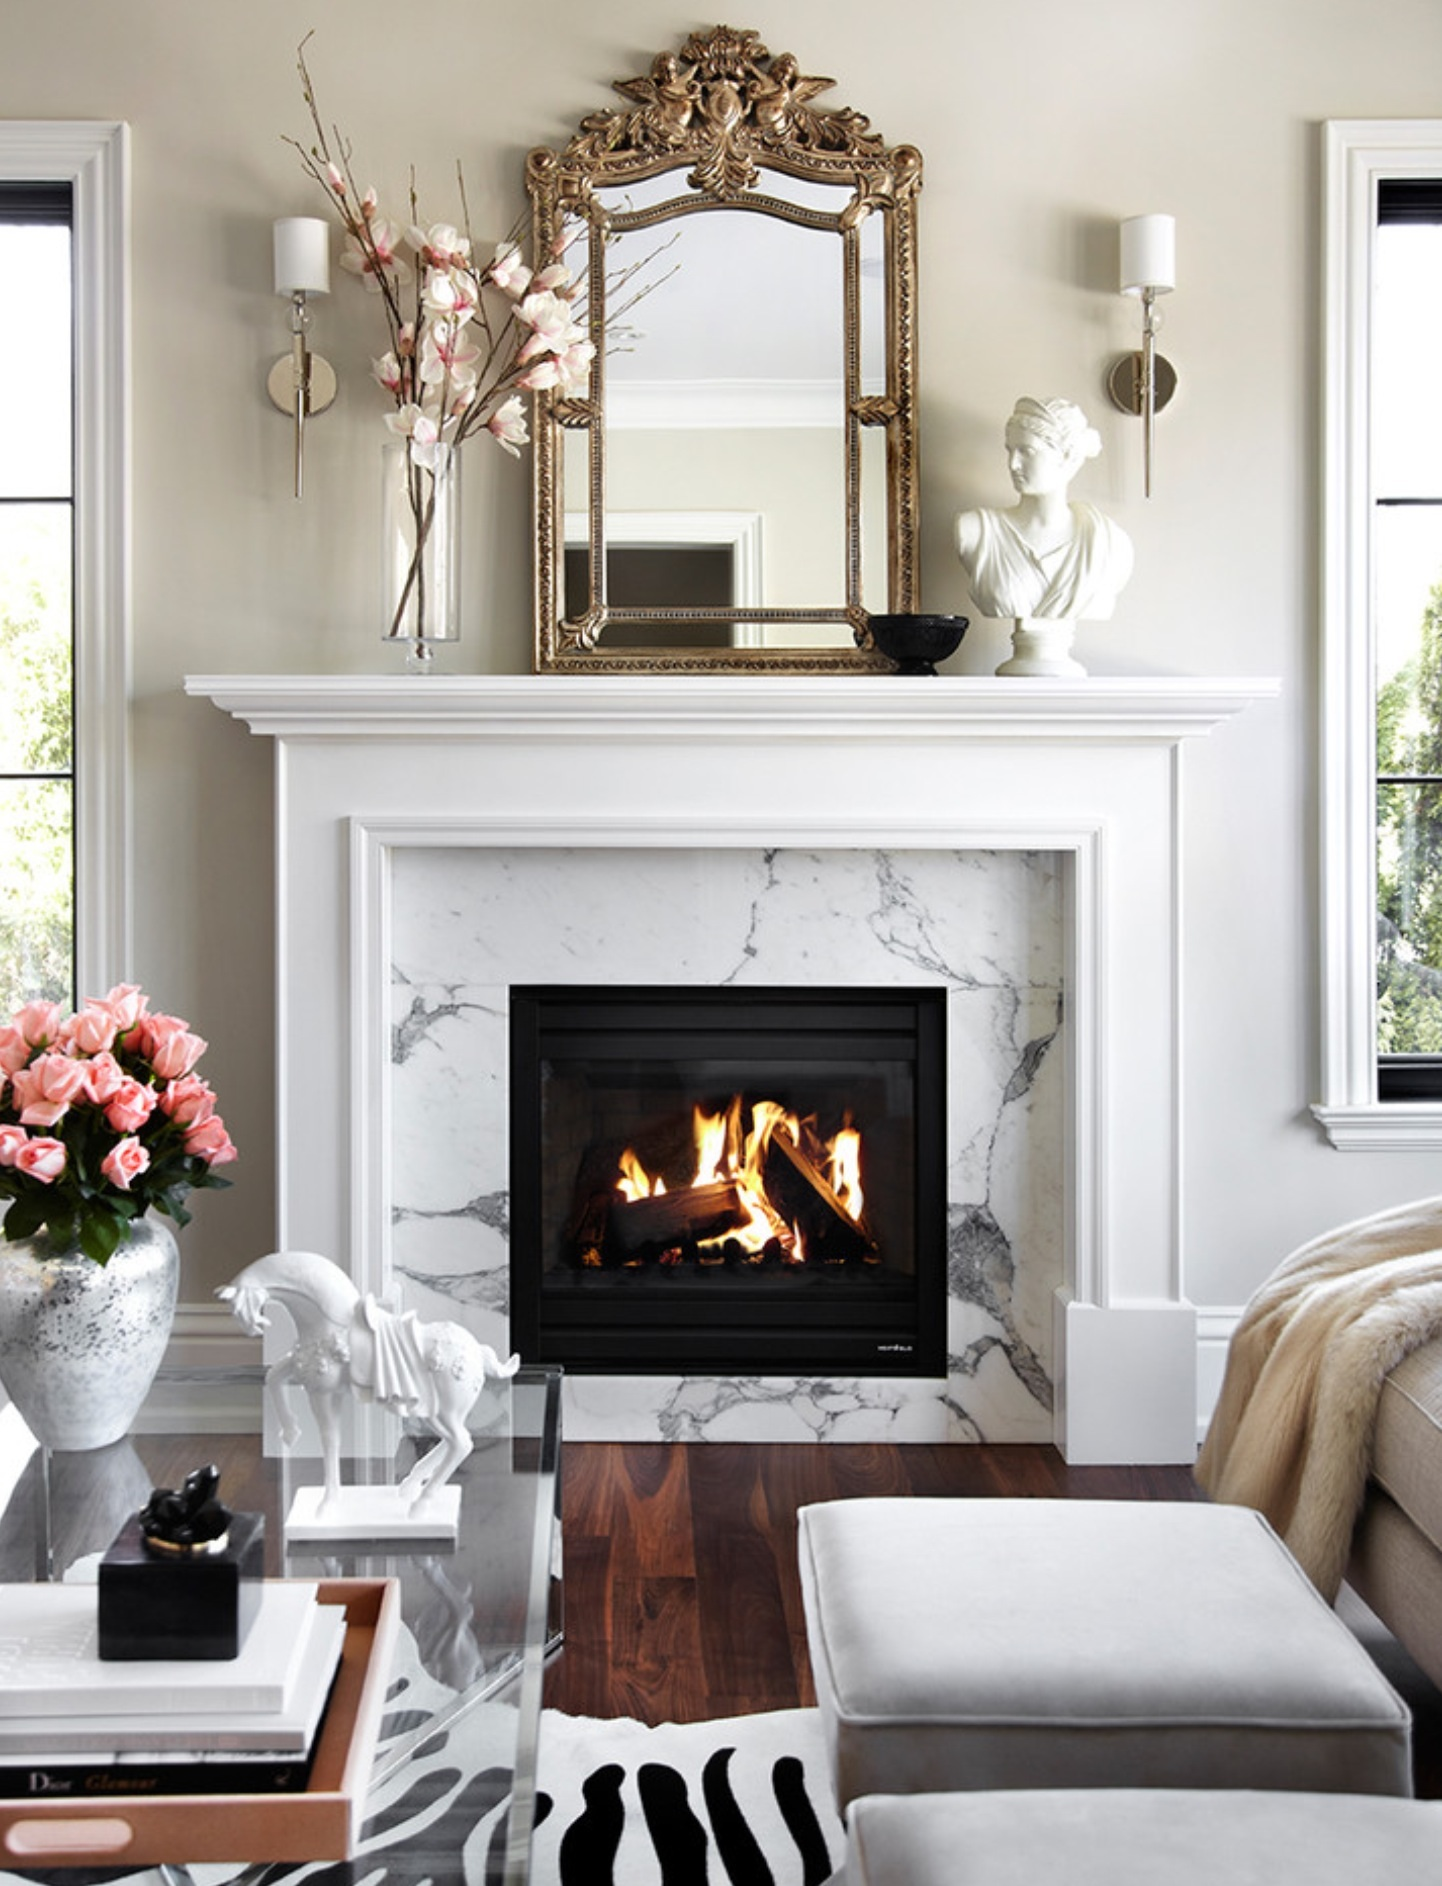 40 Beautiful Living Room Designs With Fireplace  Interior